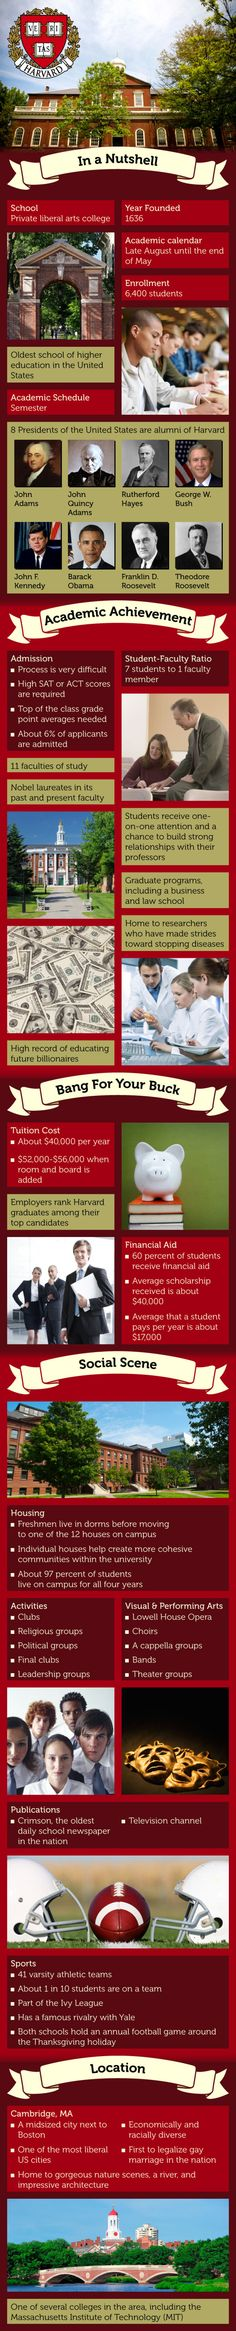 Harvard University Infographic gives information about the US University location, academic achievements, admissions, programs, fees etc Dream School, Law School, Usa University, Harvard University, My College, College Hacks, Harvard College, Harvard Law, Thoughts